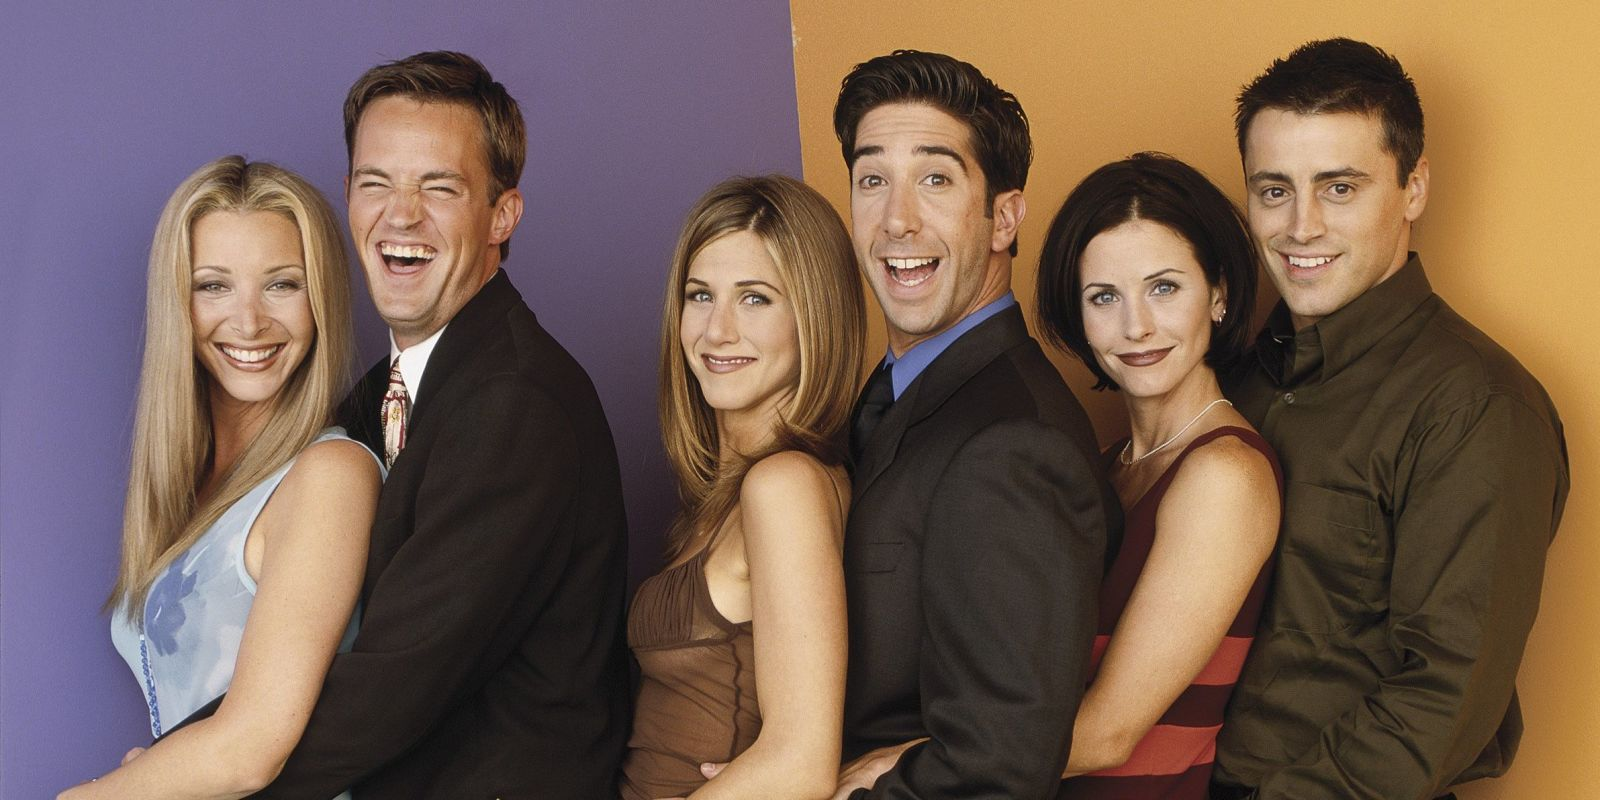 Lisa Kudrow as Phoebe, Matthew Perry as Chandler, Jennifer Aniston as Rachel, David Schwimmer as Ross, Courteney Cox as Monica, and Matt LeBlanc as Joey in Friends